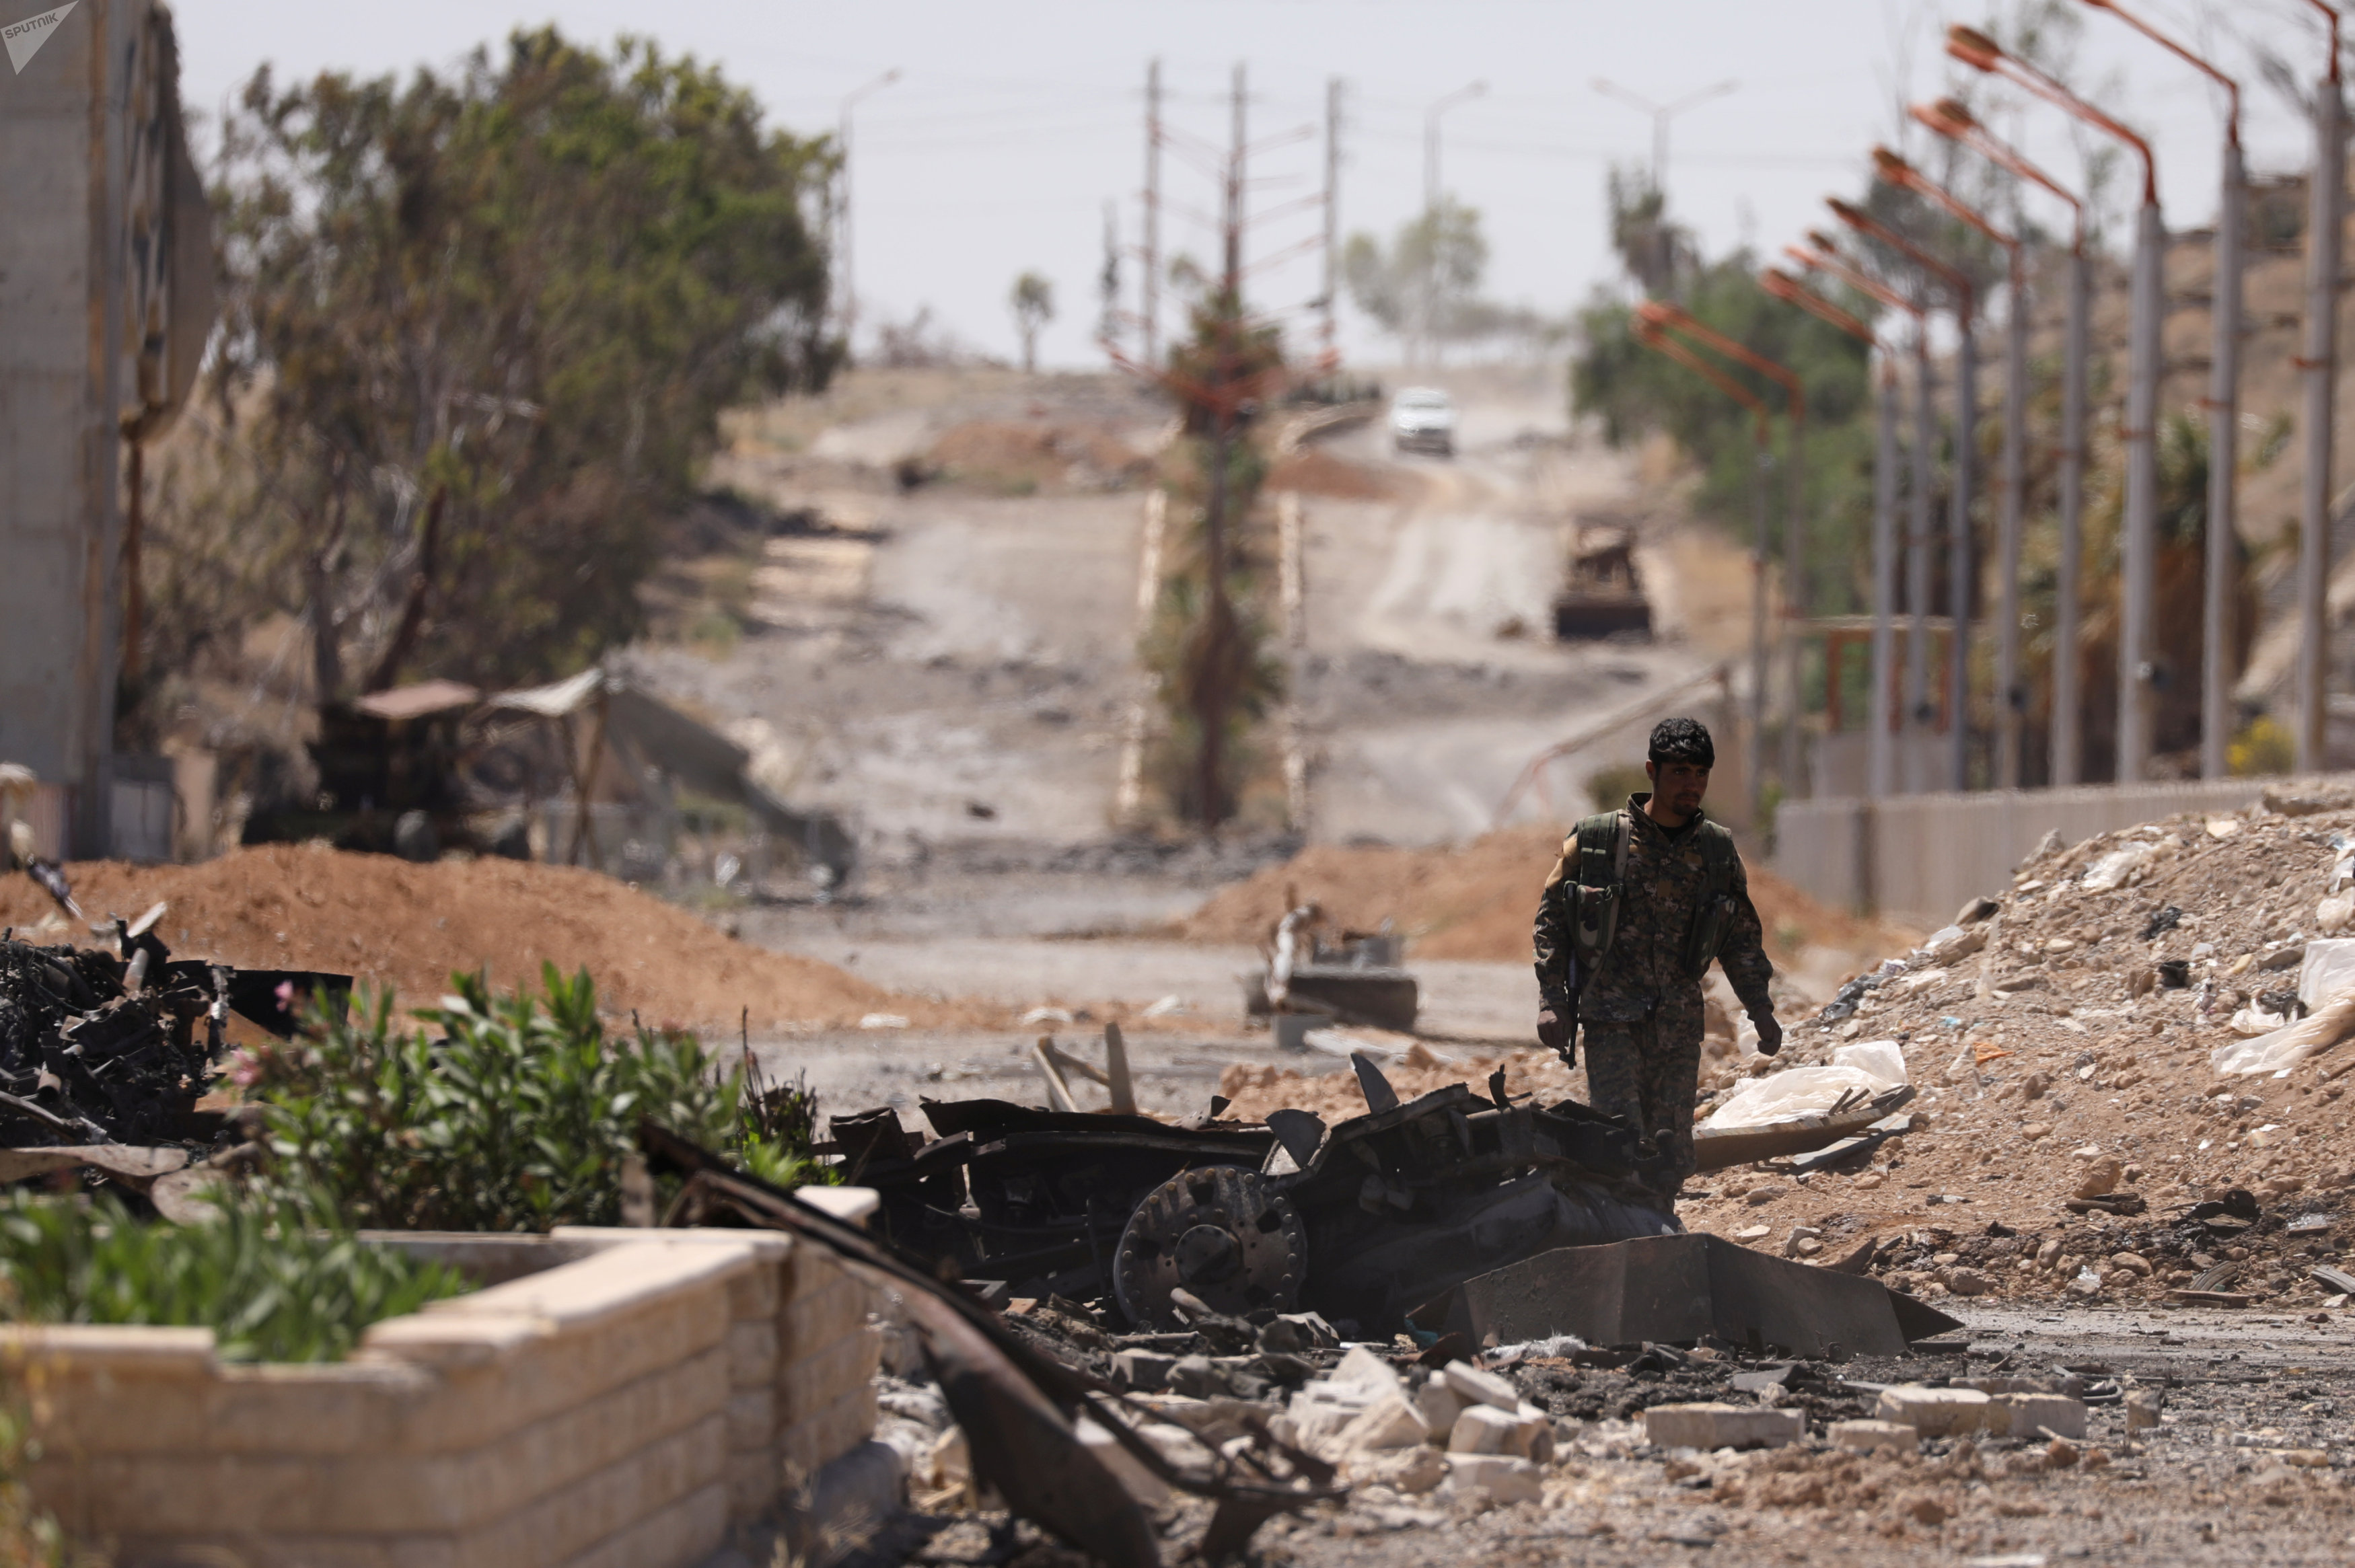 A Syrian Democratic Forces (SDF) fighter walks through a damaged street in the Syrian city of Tabqa, after SDF captured it from Daesh militants, May 12, 2017